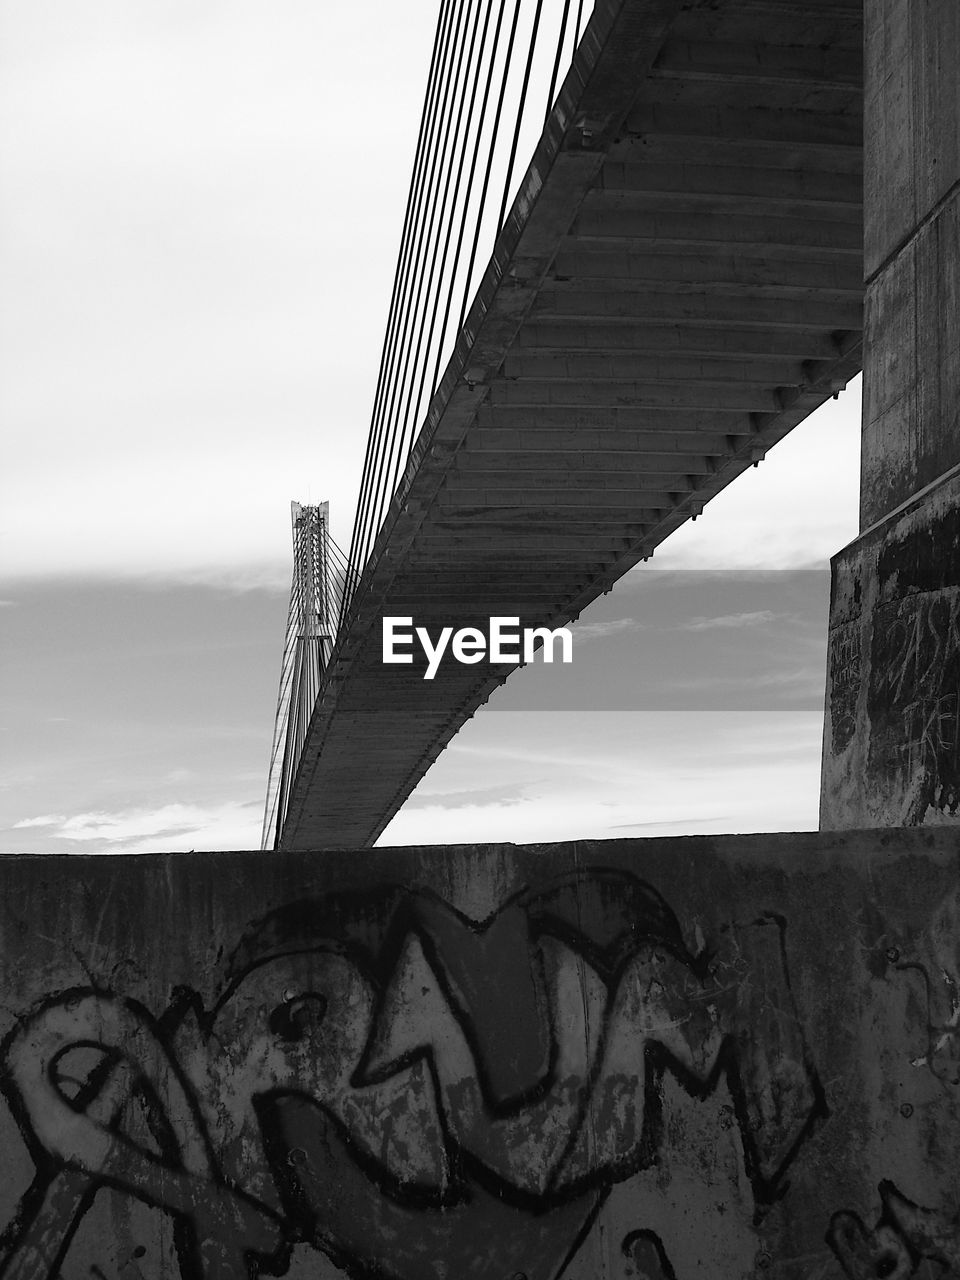 architecture, built structure, bridge, sky, bridge - man made structure, graffiti, text, no people, low angle view, western script, nature, connection, day, wall - building feature, building exterior, communication, wall, transportation, outdoors, cloud - sky